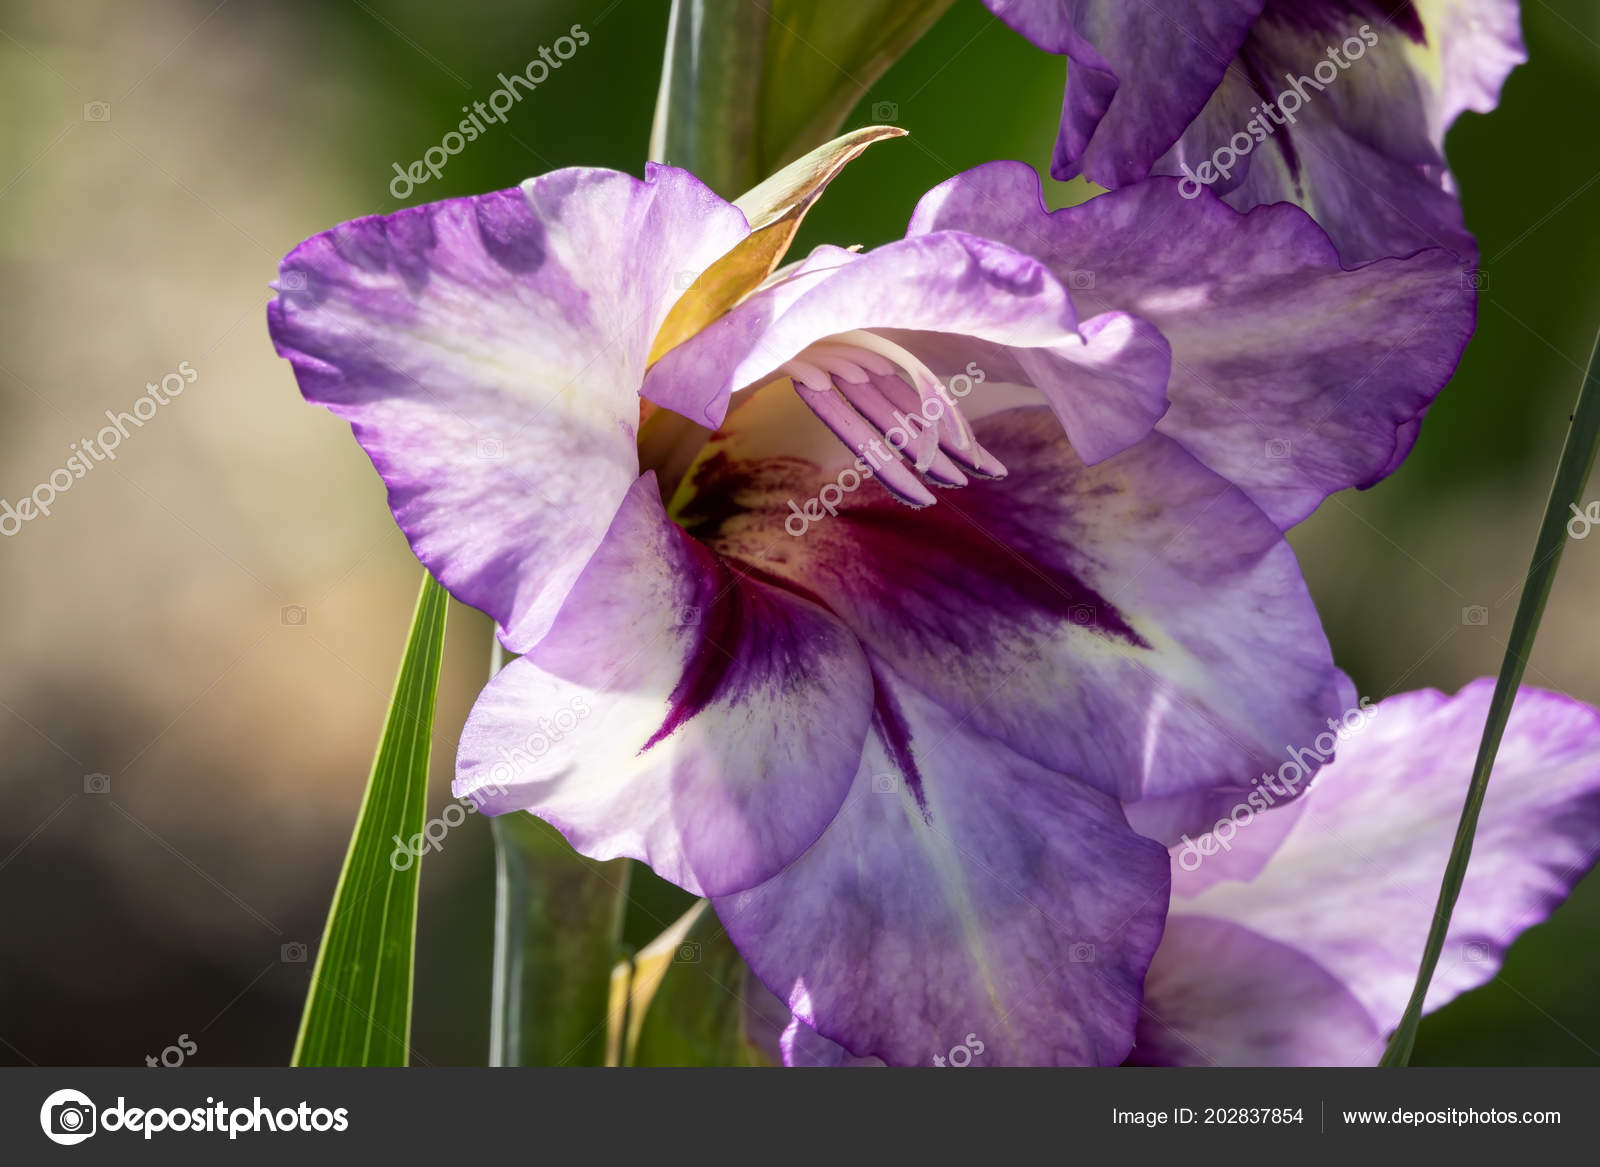 Gladiolus close beautiful flowers blooming garden stock photo gladiolus close beautiful flowers blooming garden stock photo izmirmasajfo